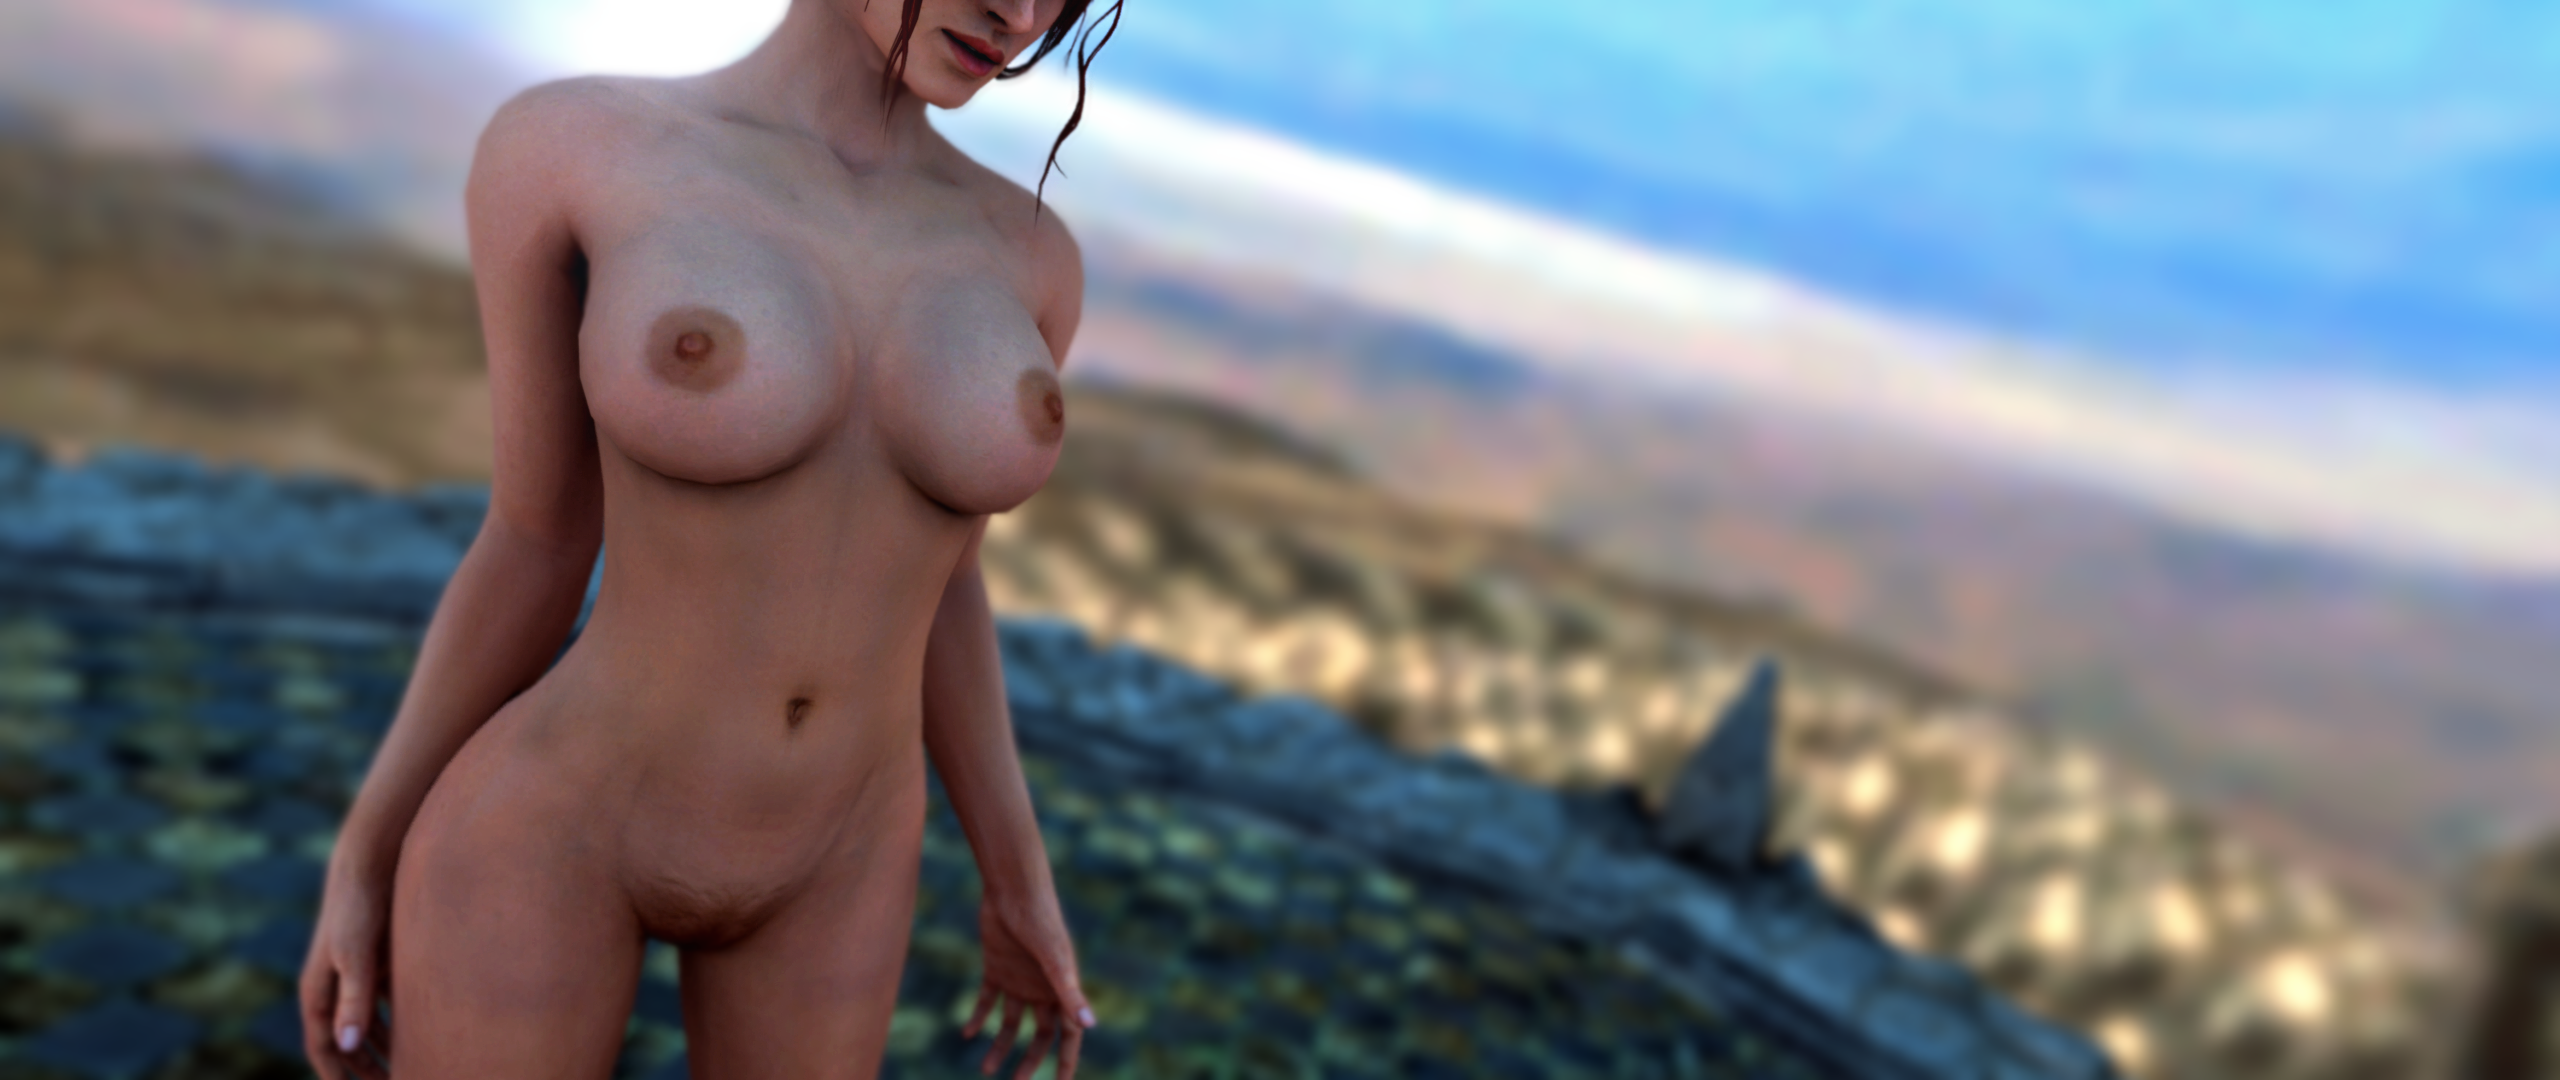 The witcher enhanced nude mods hentai videos